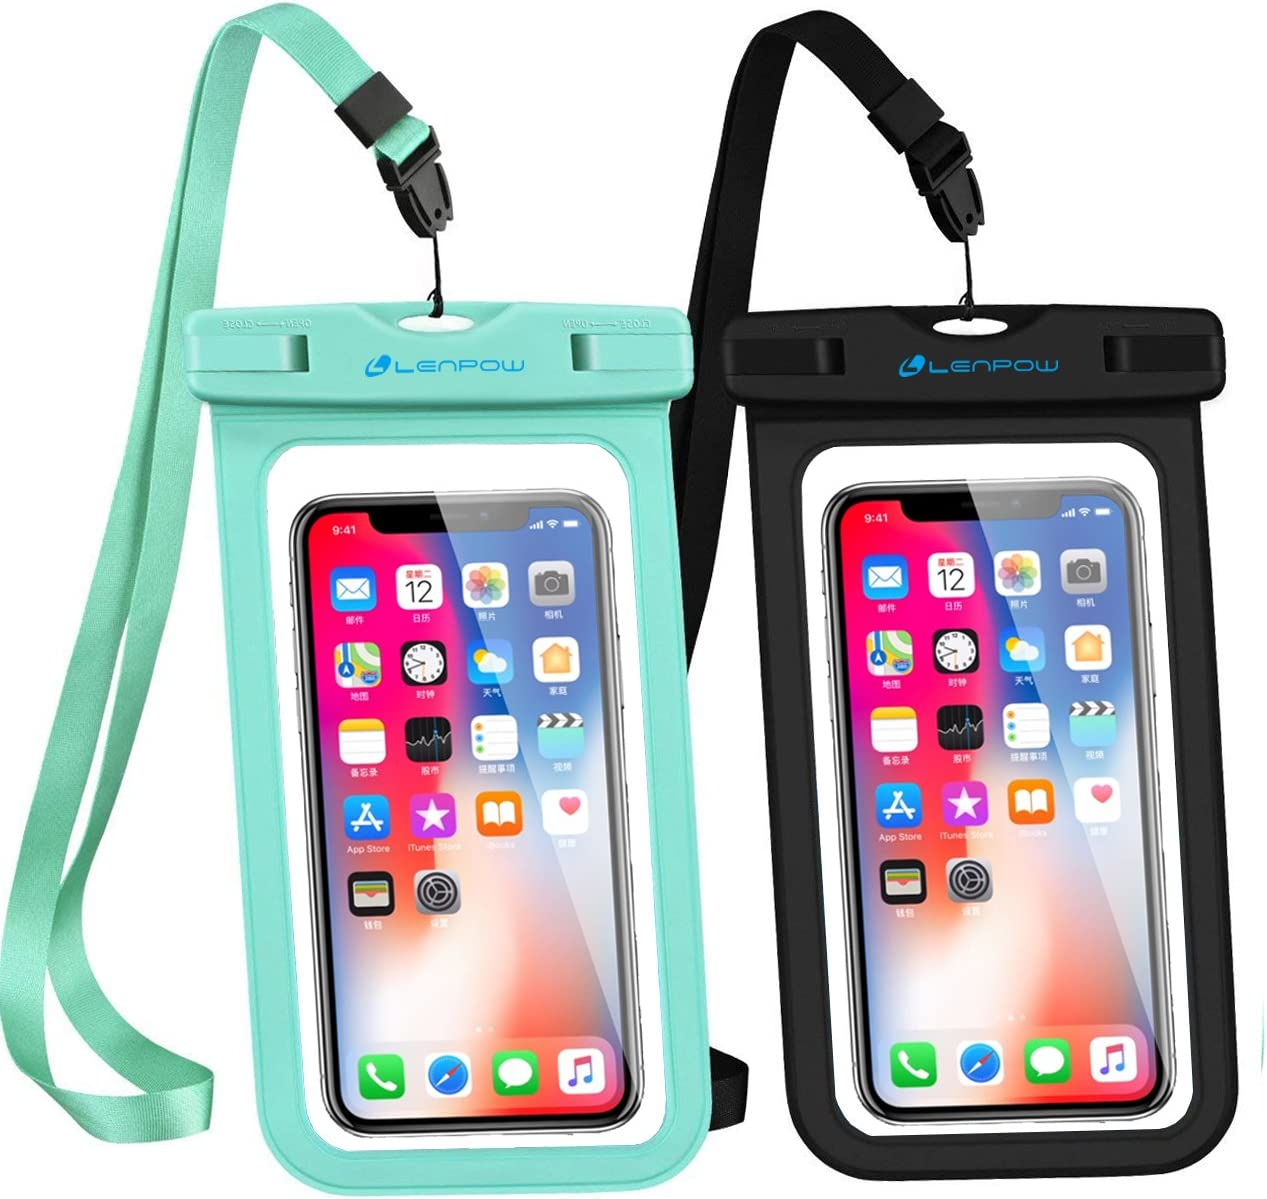 LENPOW Waterproof Phone Case, 2-Pack IPX8 Lanyard Waterproof Phone Pouch, Universal Clear Dry Bag Compatible iPhone 12 11 Pro XS Max XR X 8 7 Plus Galaxy S21/20/10 Note Google Pixel HTC up to 6.9